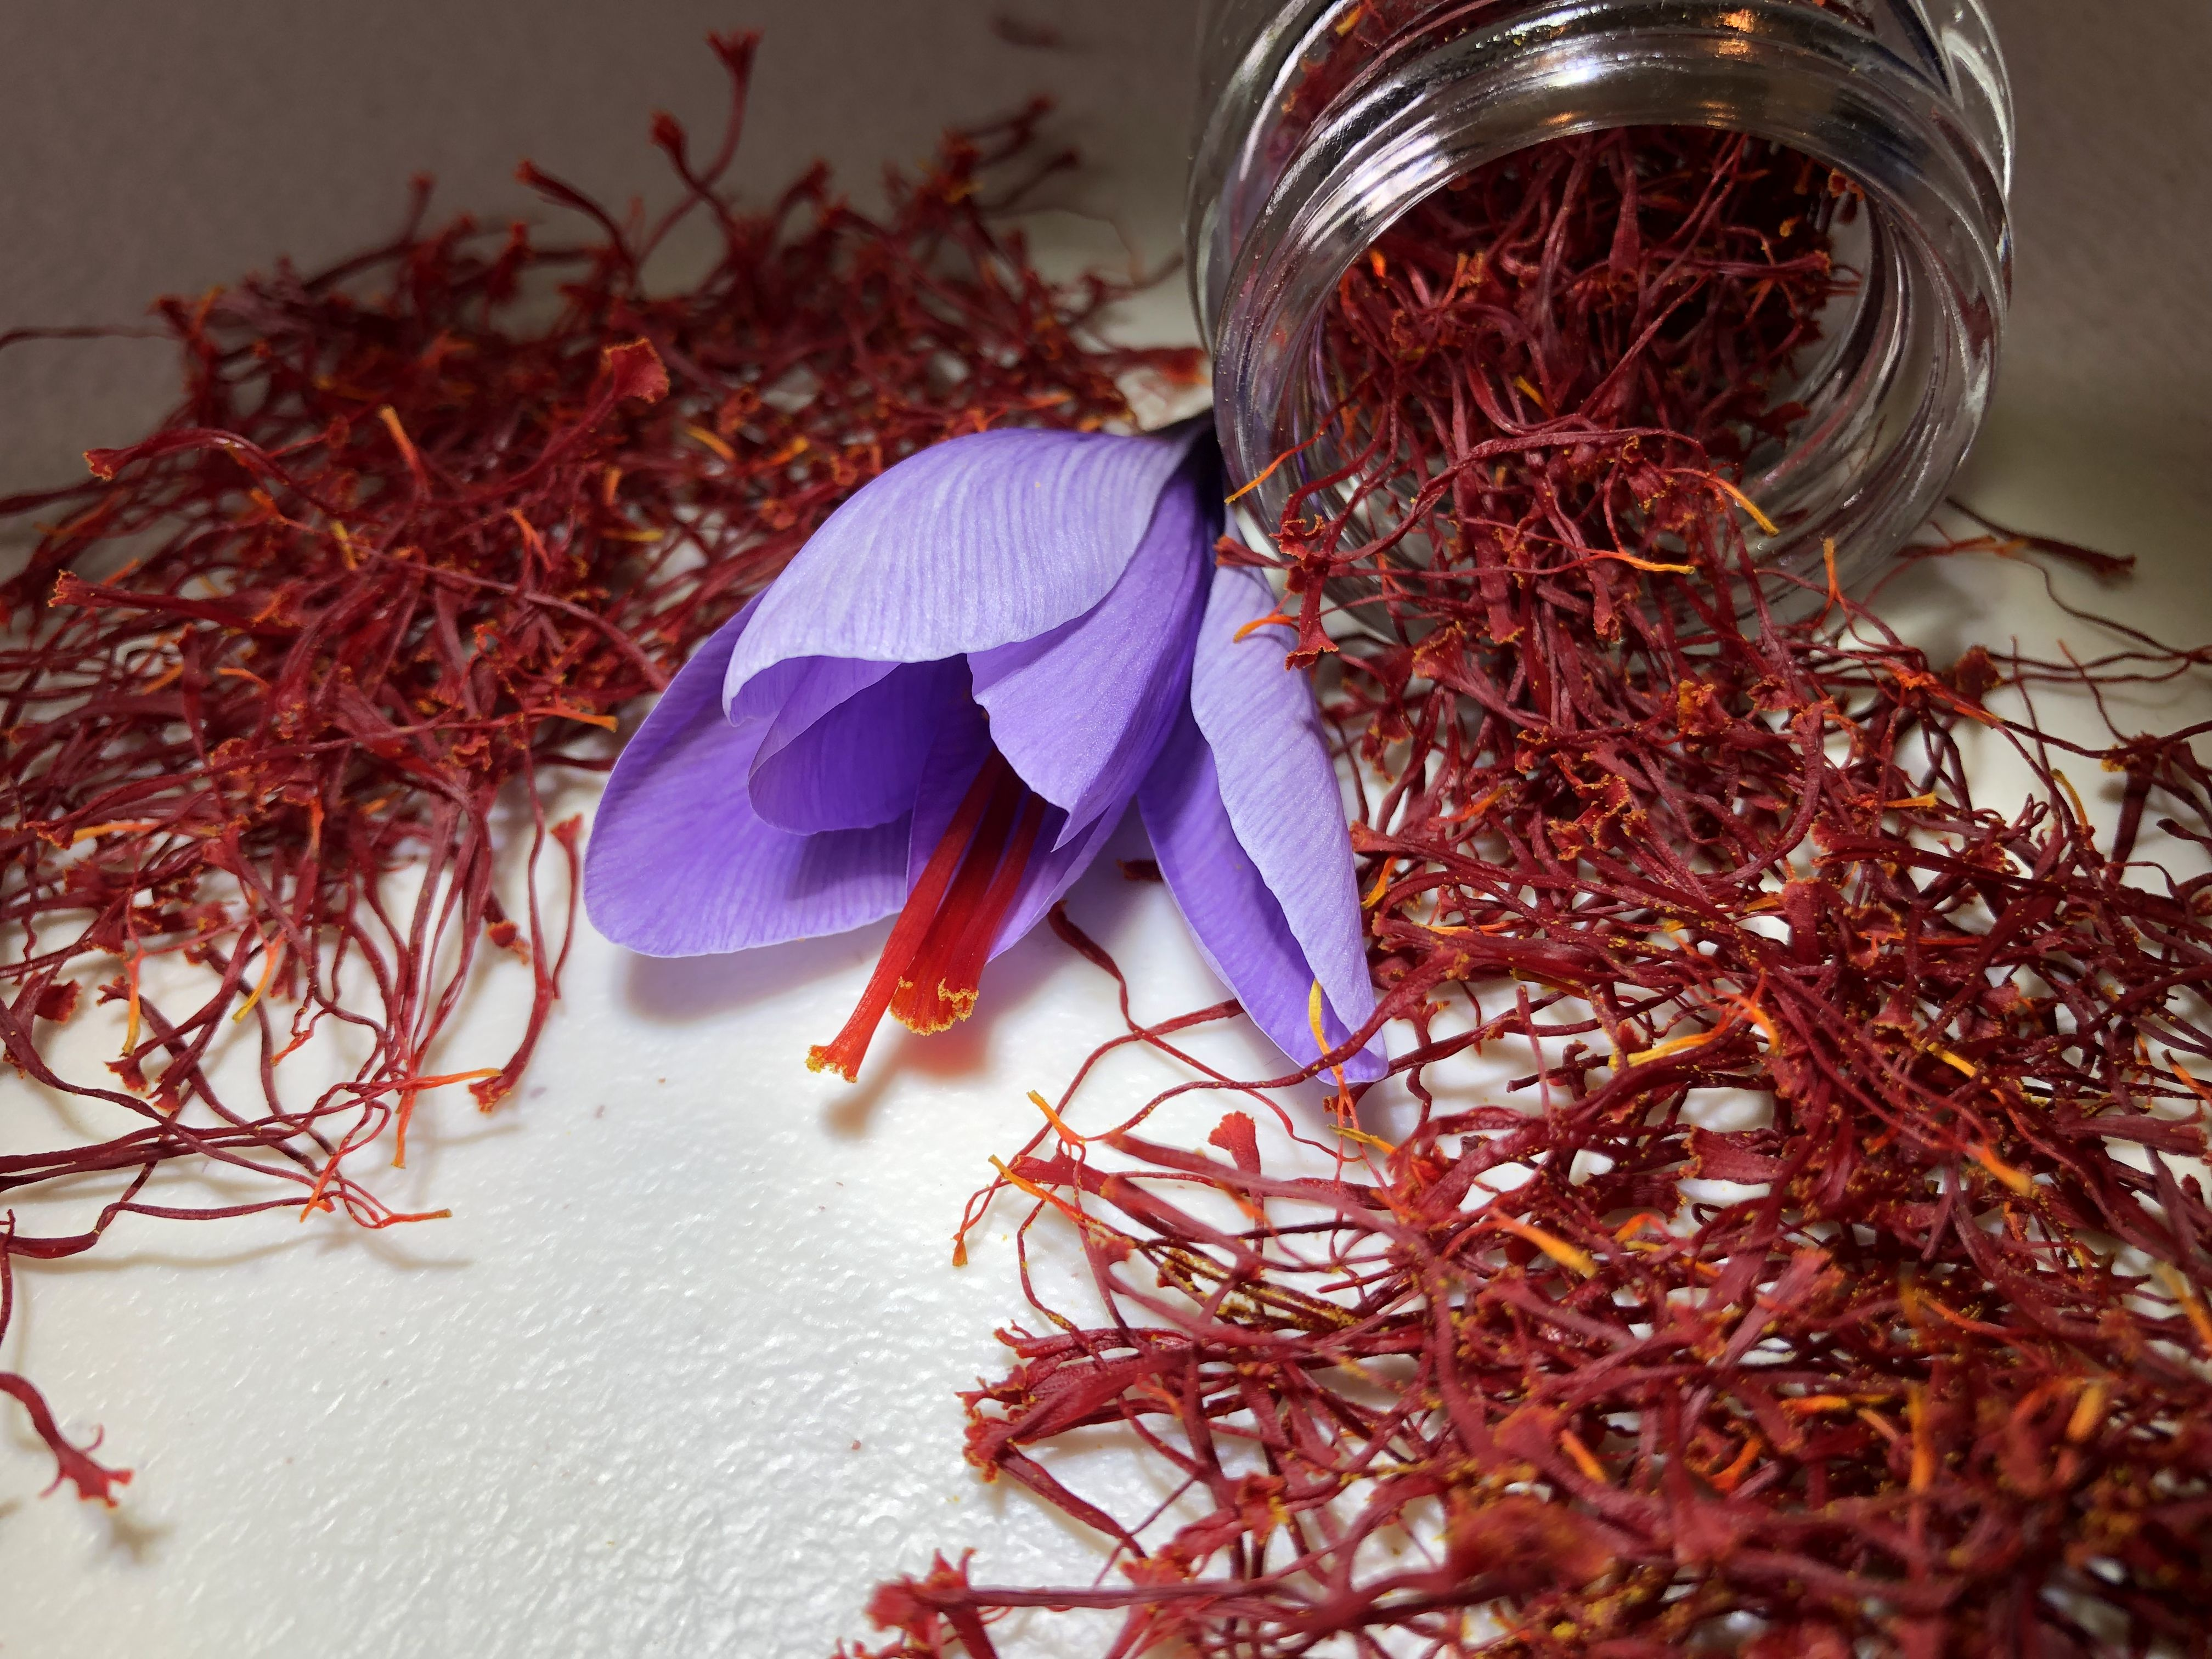 Our saffron corms have the potential to grow PREMIUM GRADE